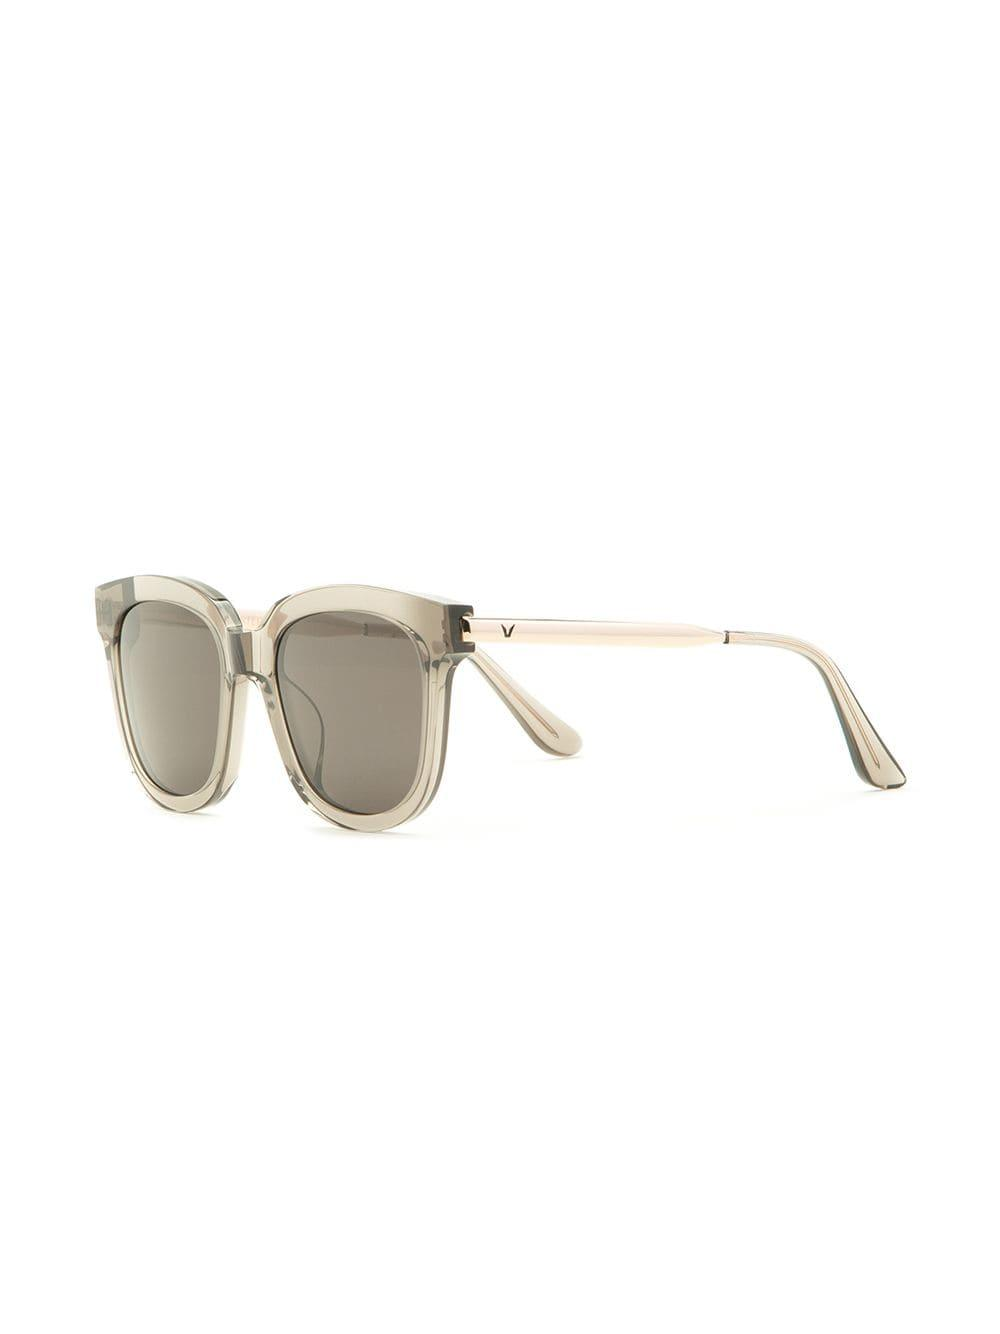 7f2e350ab4 Gentle Monster Absente Gc2gd Sunglasses in Gray - Lyst